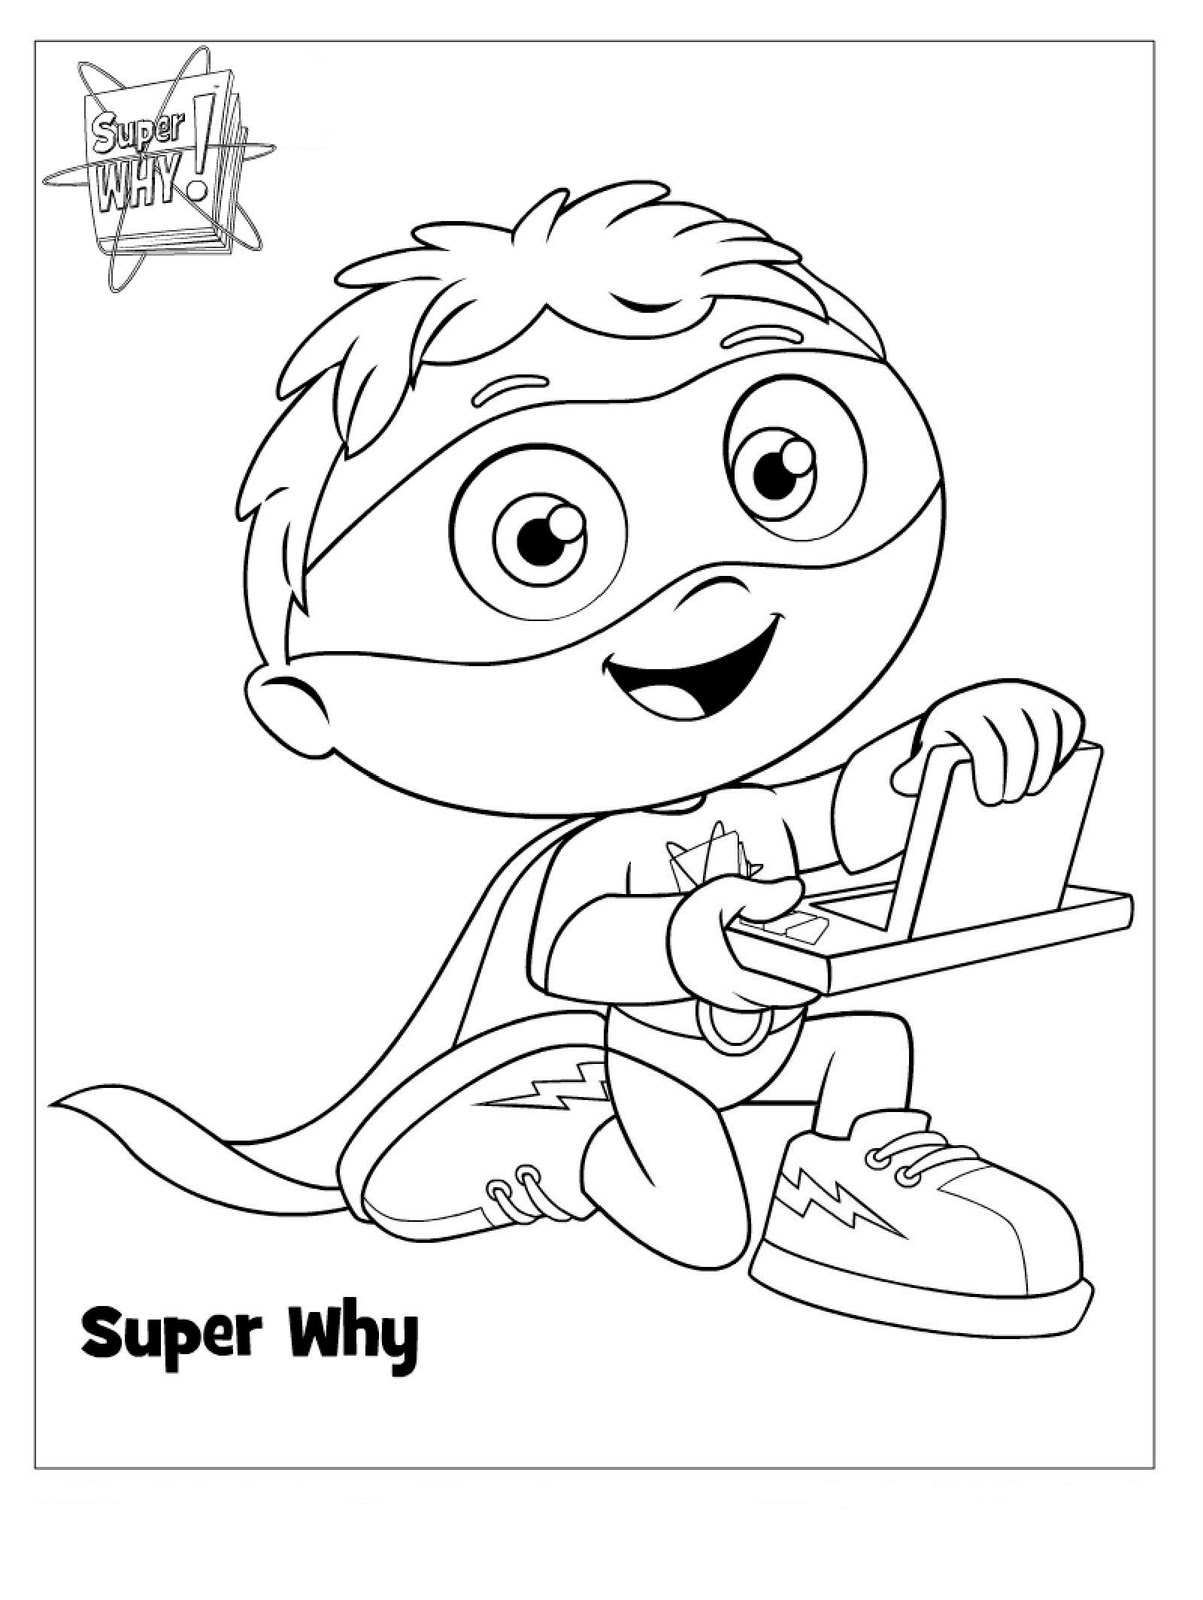 Super Why Wonder Red Coloring Page We Also Bought Party Horns Building Blocks Crayons Shape Sorters And Bubbles These Were All From Various Thrift